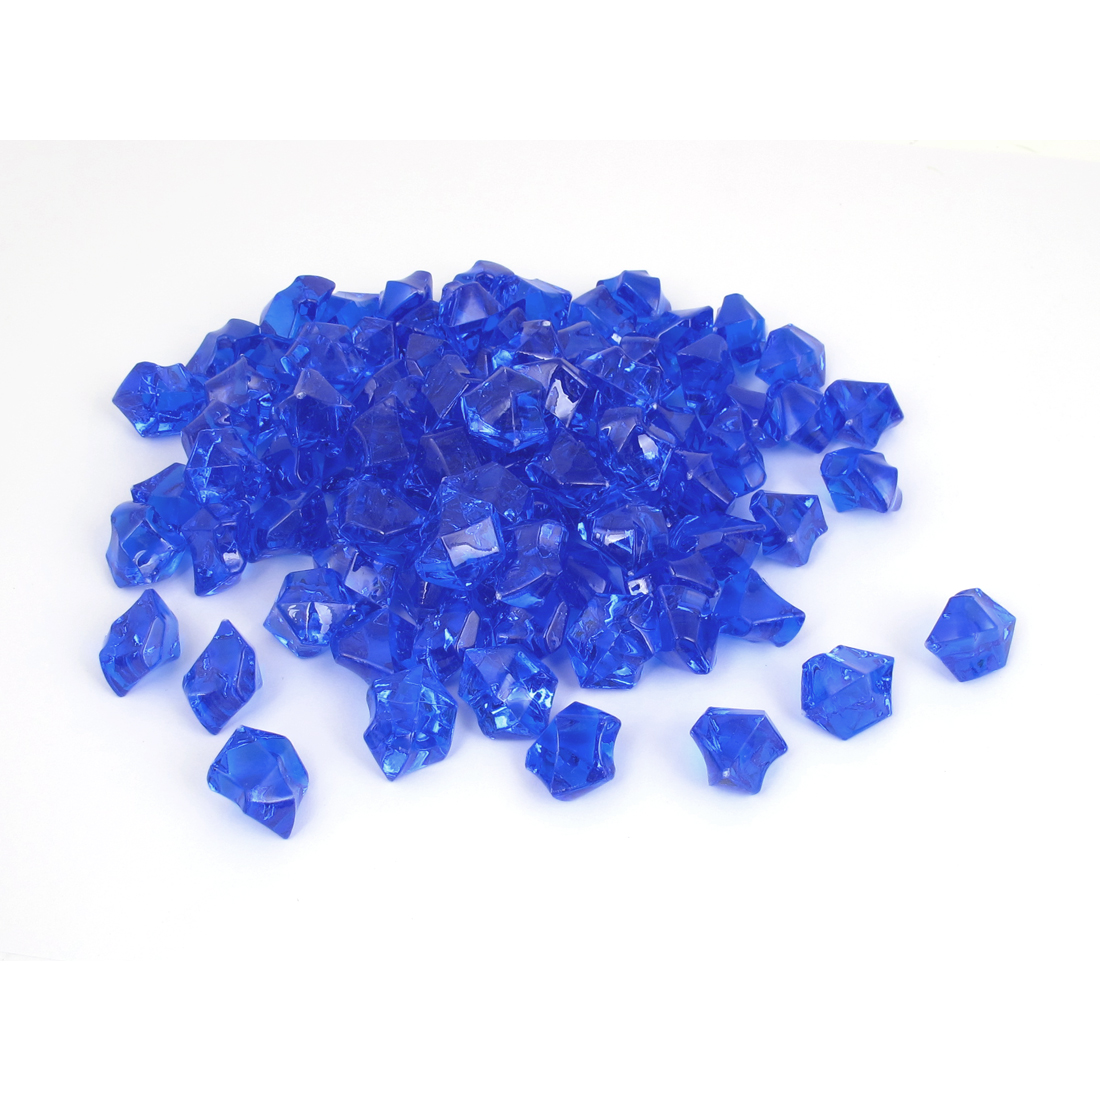 111 Pcs 2.5cm Length Blue Plastic Atificial Polygon Decor Aquarium Plastic Crystal Stones for Fish Tank Fishbowl